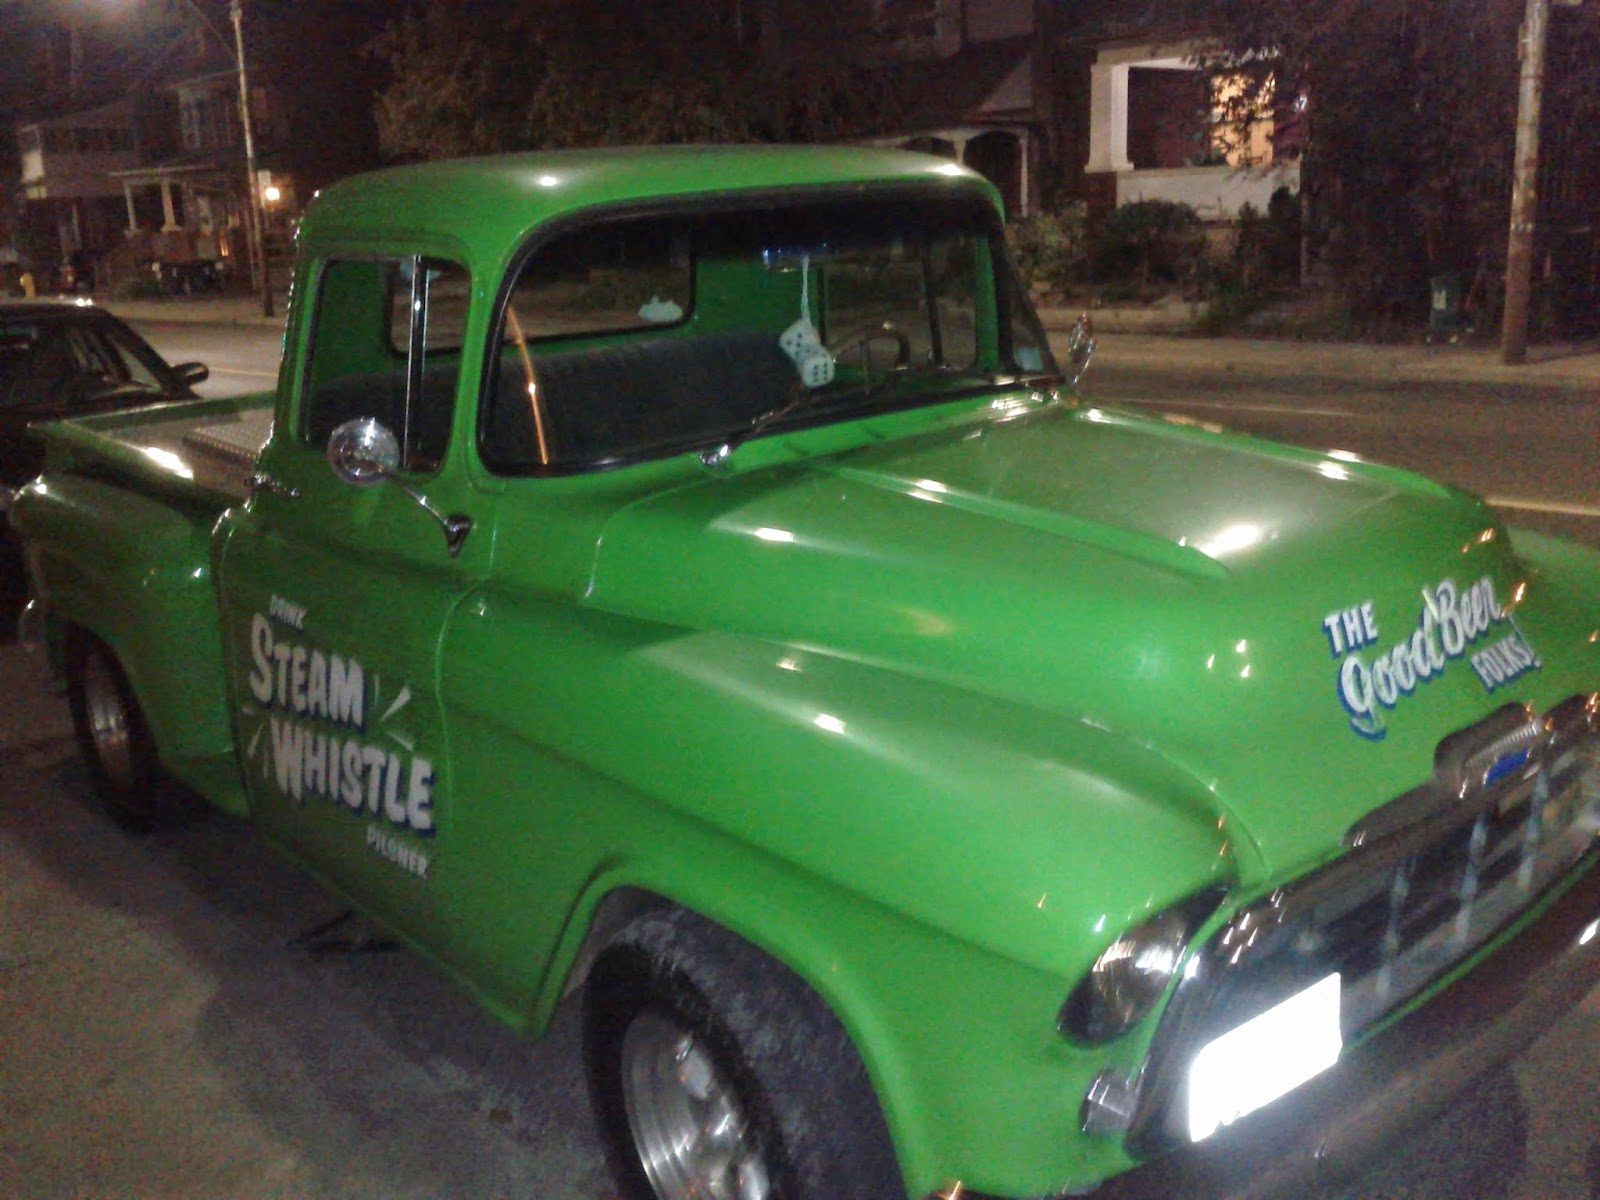 Steam Whistle green pick up truck